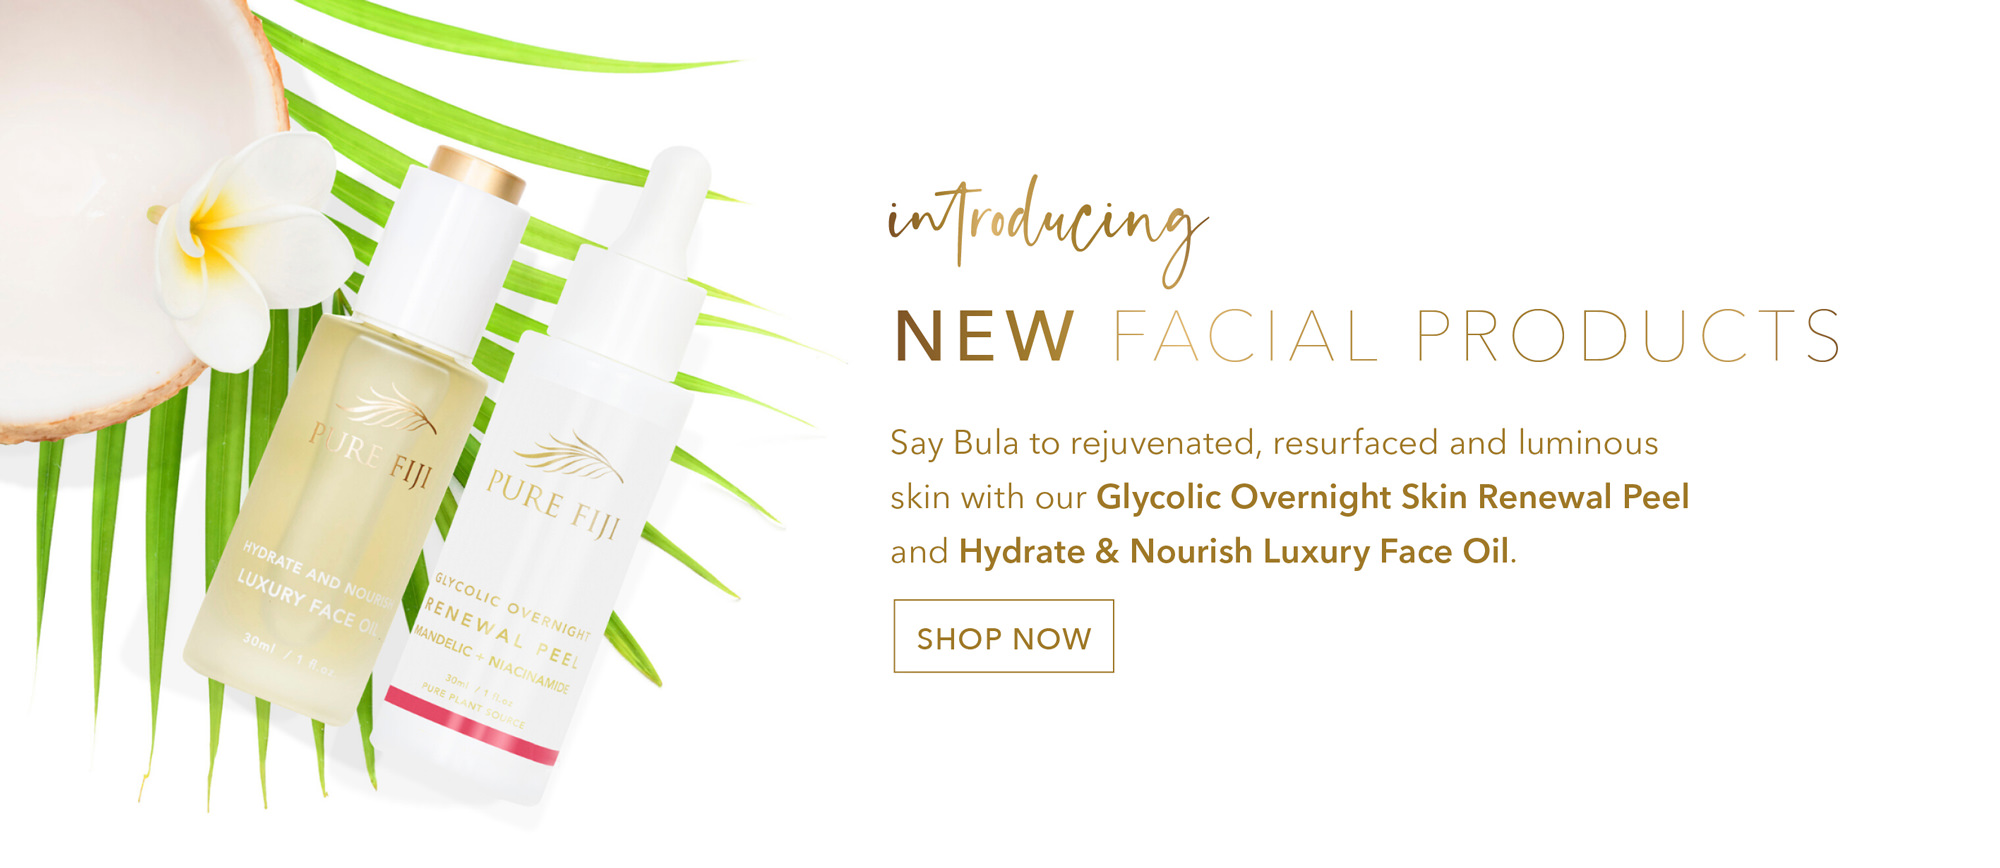 Introducing new facial products.